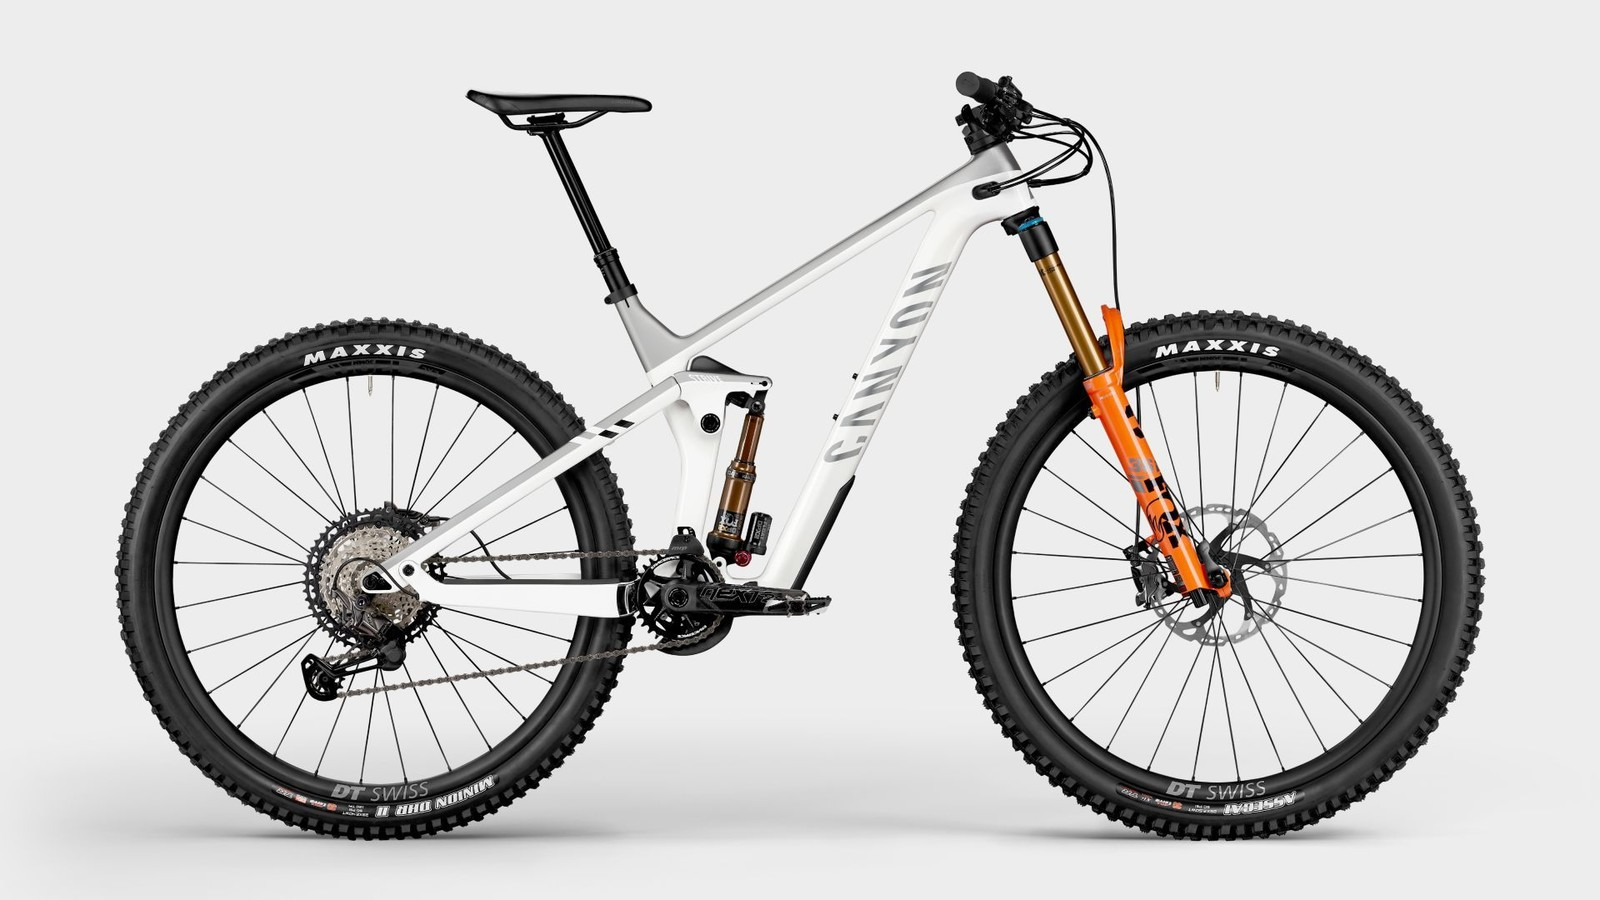 Canyon Updates the Strive with Fresh Colors and Specs for 2021